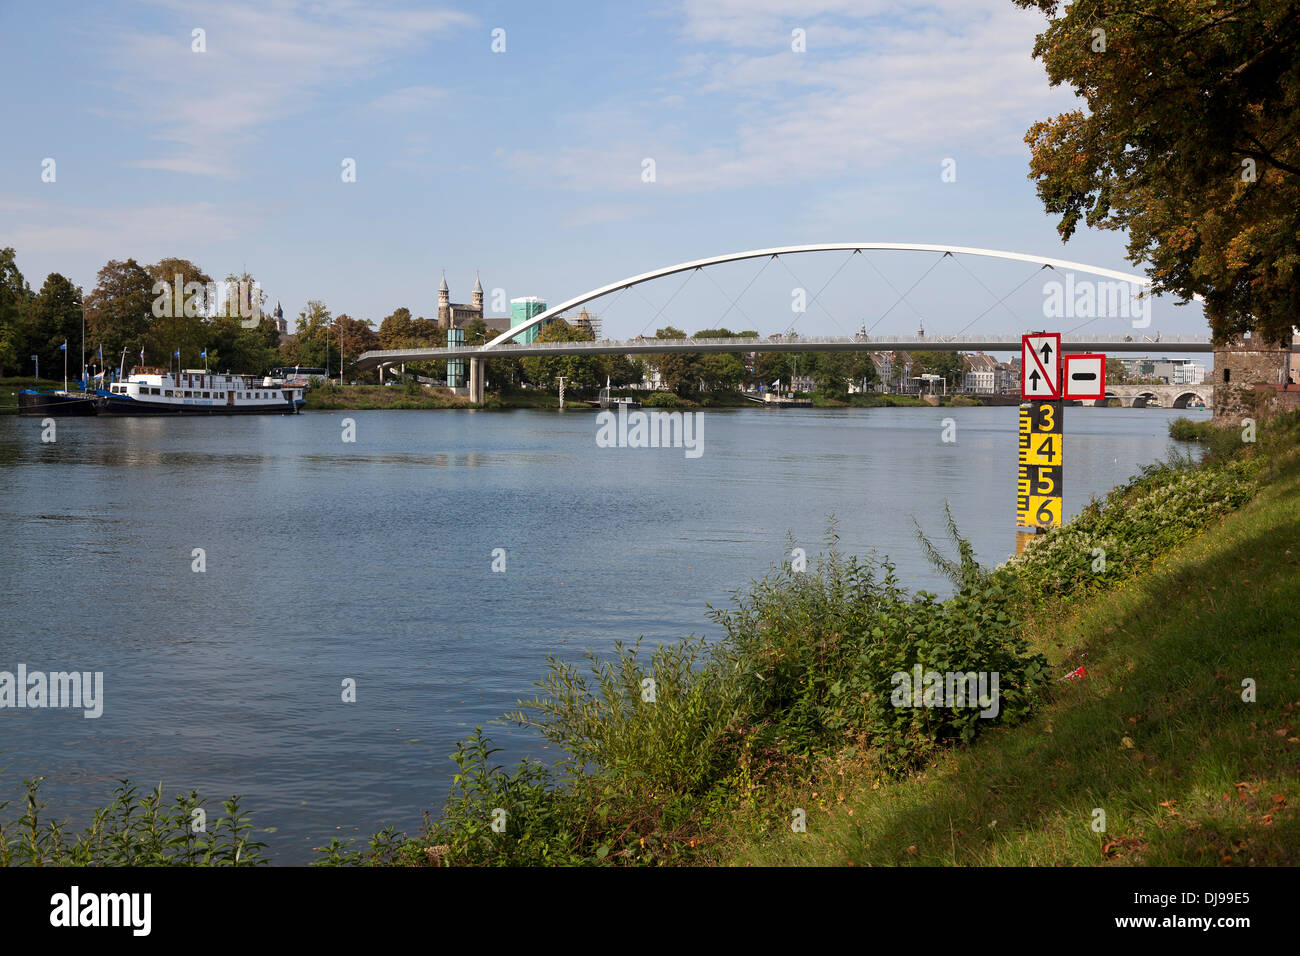 The Hoge Brug, pedestrian and cycle bridge that spans the Meuse, Maastricht, Netherlands - Stock Image